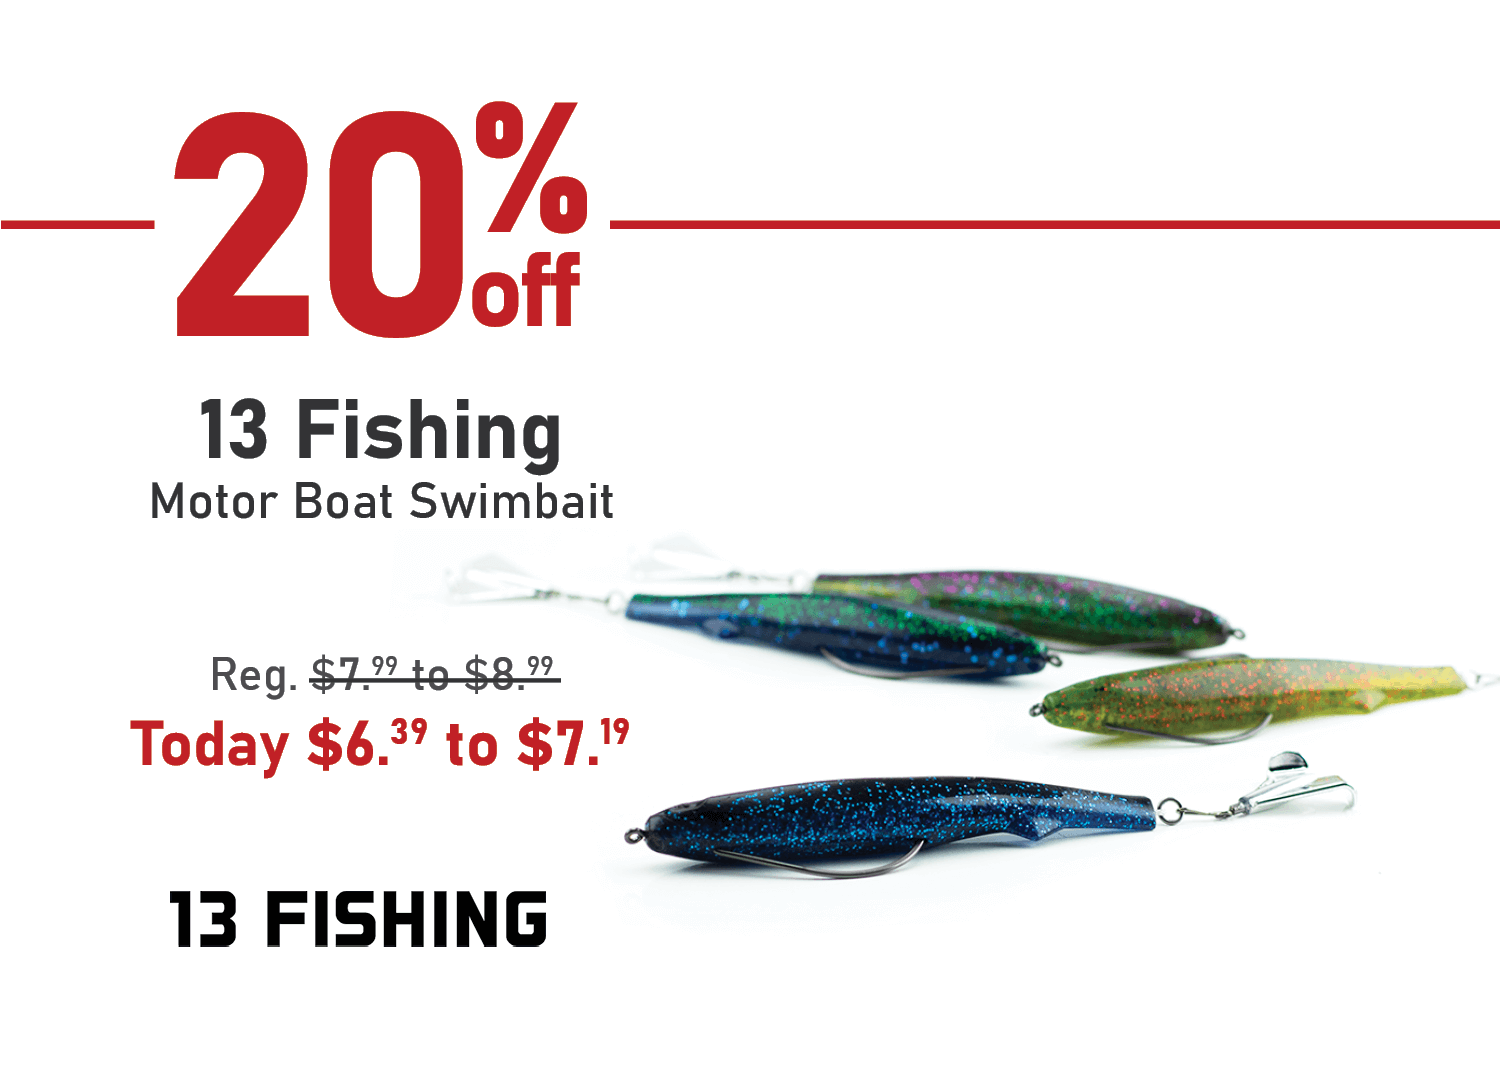 Take 20% off the 13 Fishing Motor Boat Swimbait